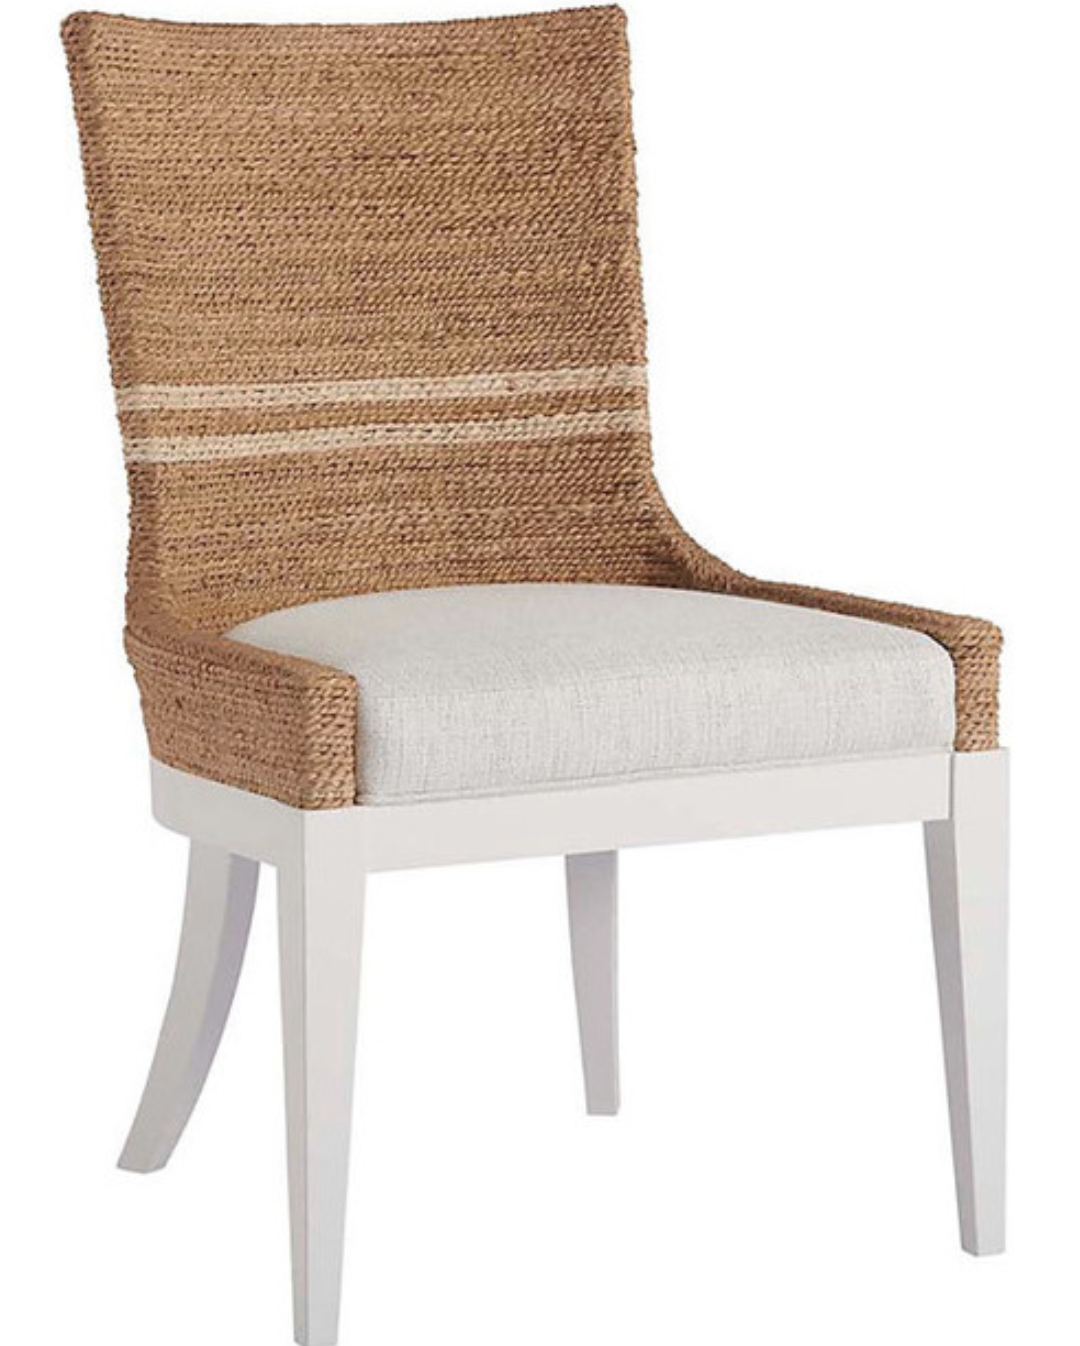 coastal-living-siesta-key-dining-chair